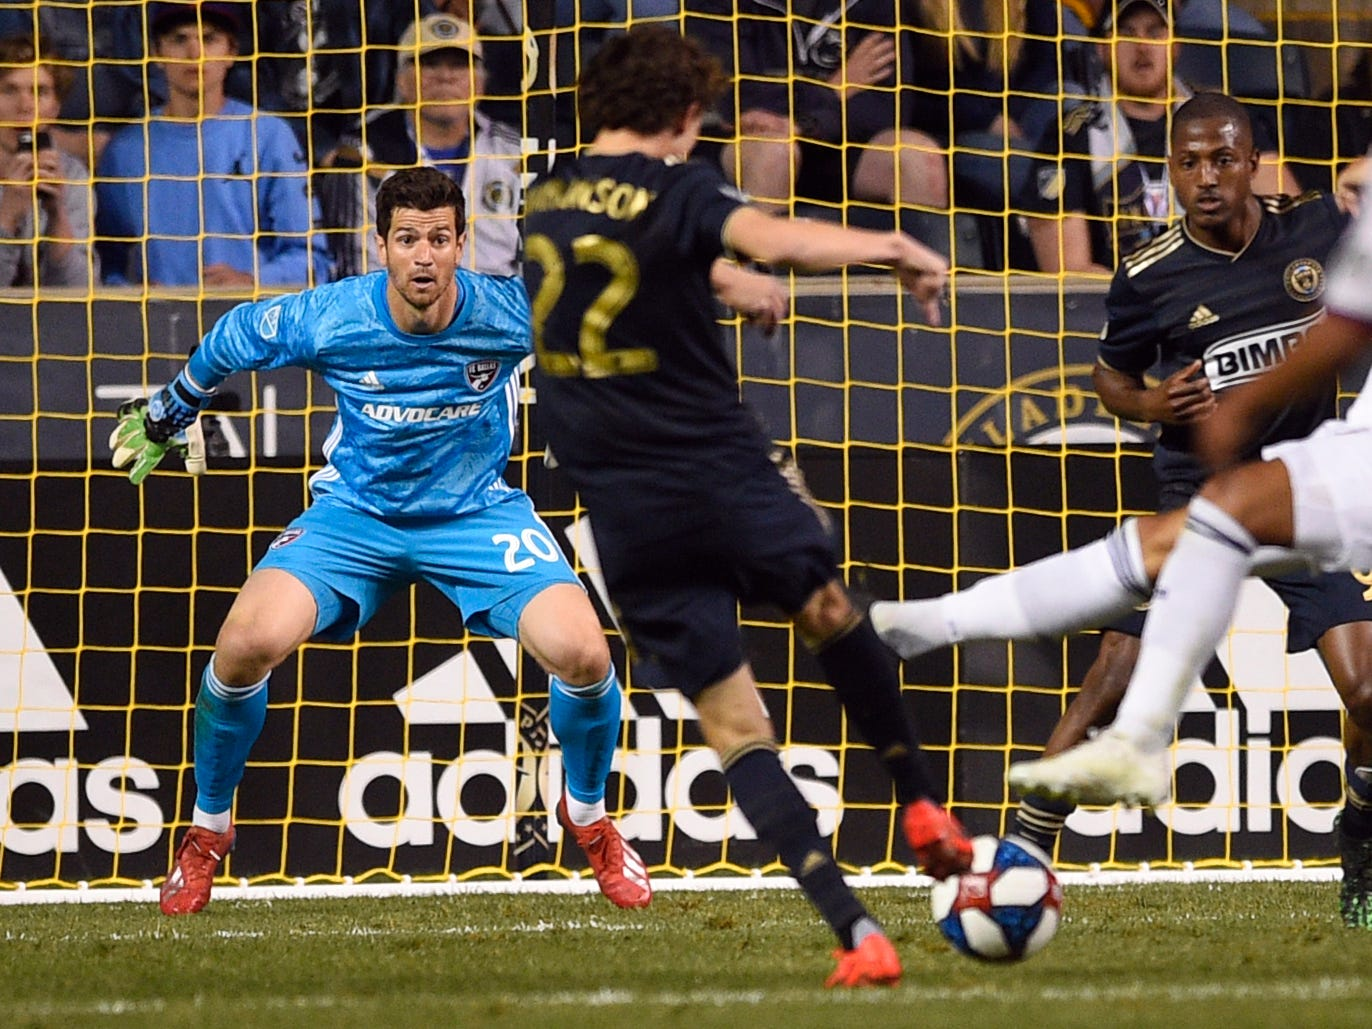 April 6: FC Dallas goalkeeper Jimmy Maurer watches a shot by Philadelphia Union midfielder Brenden Aaronson (22) during the first half at Talen Energy Stadium. Philadelphia won the game, 2-1.